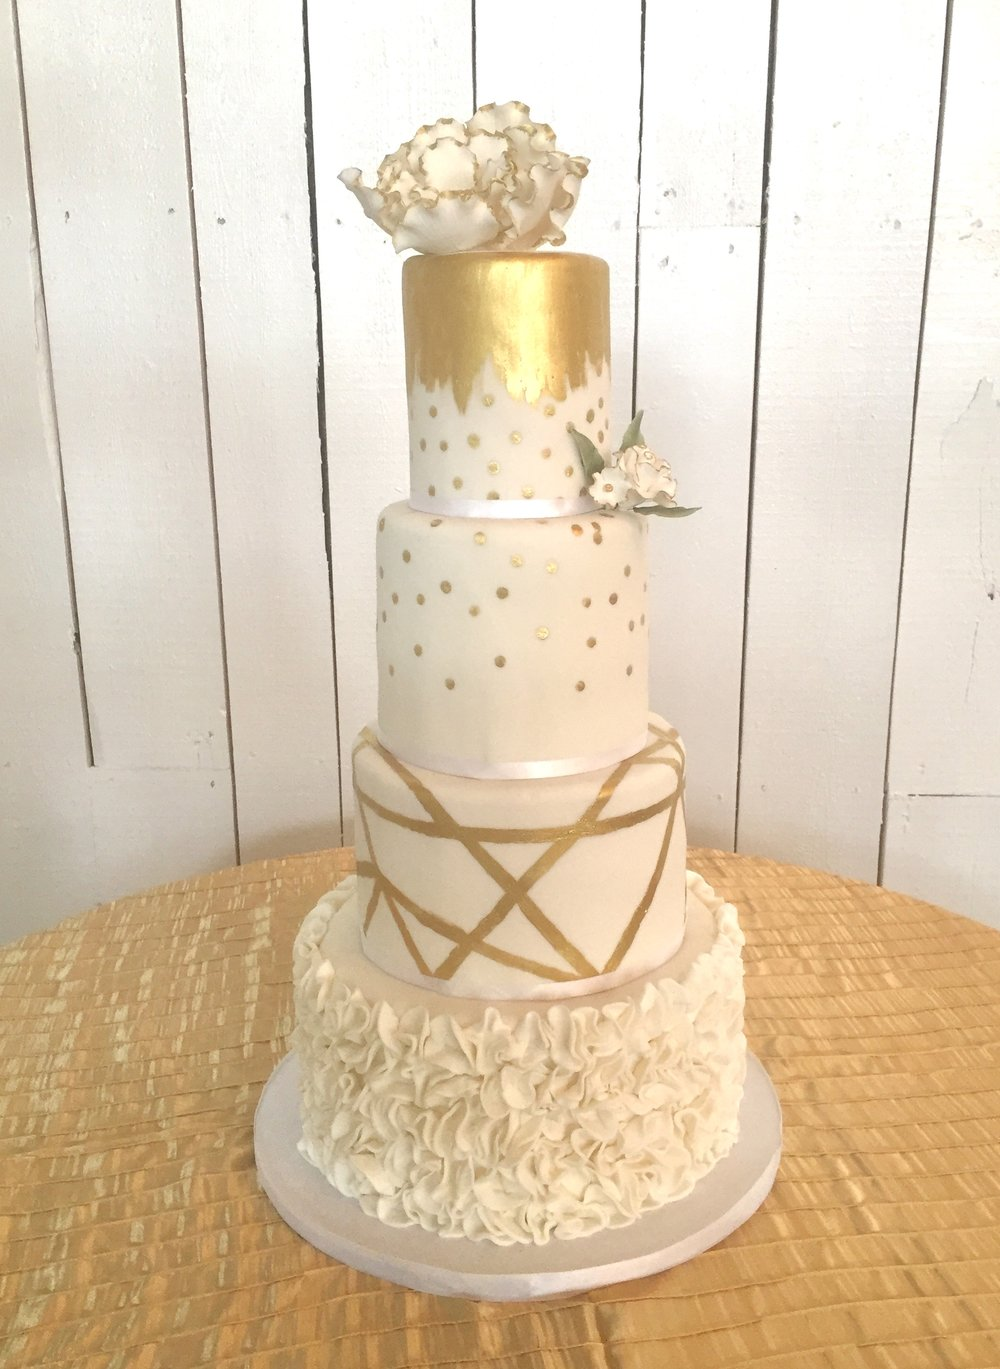 4 Tier Gold and White Wedding Cake